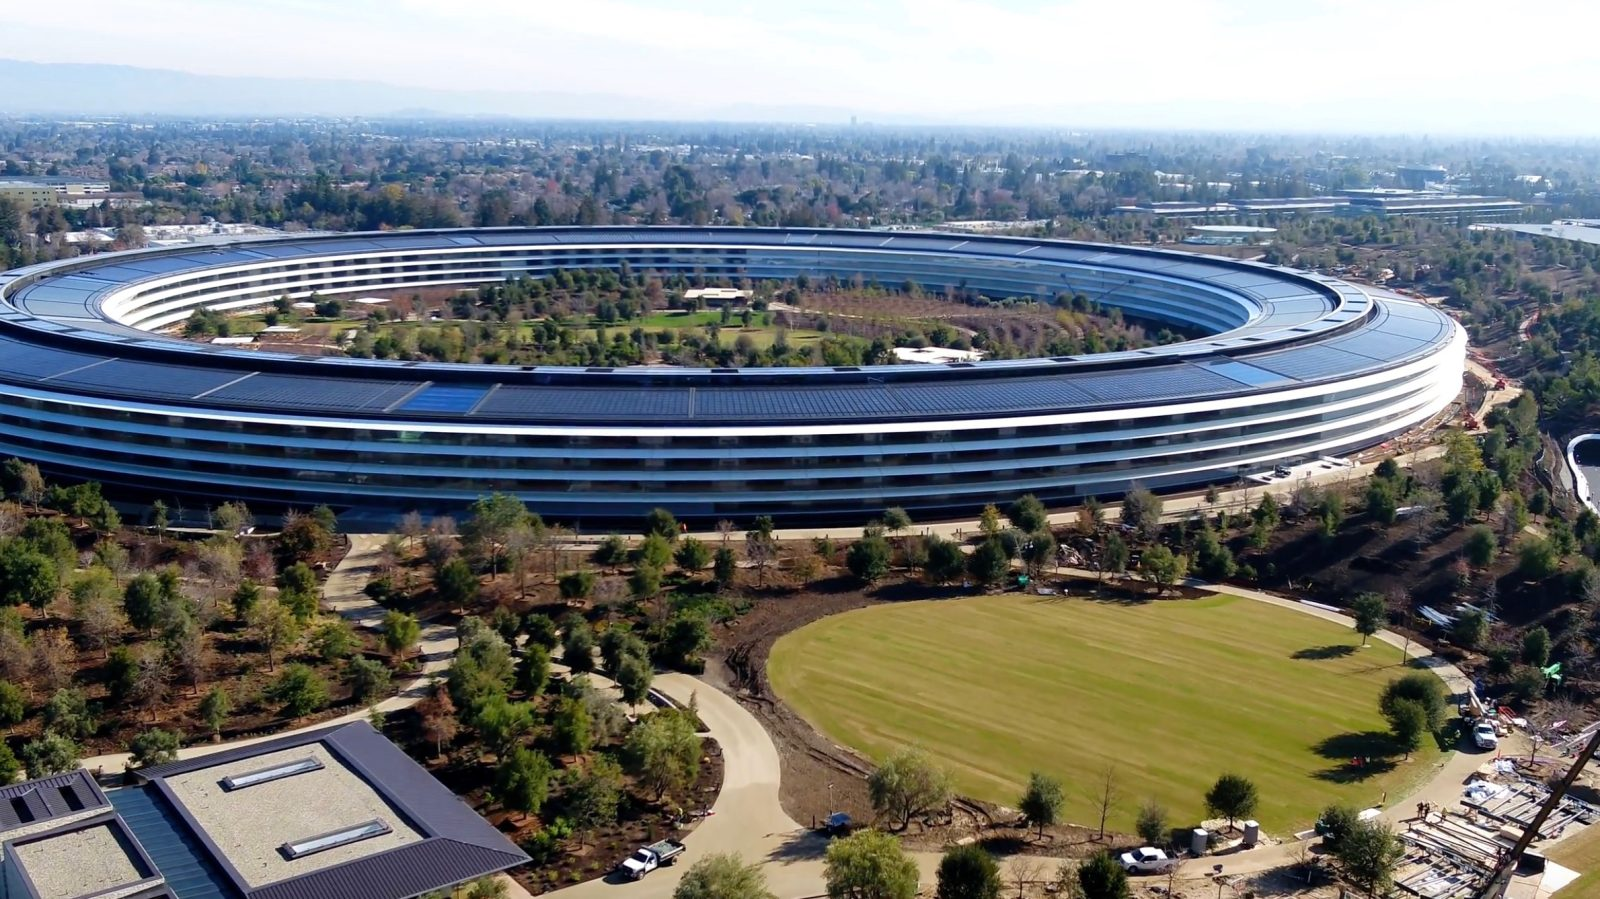 Apple reportedly asking employees for their vaccination status in some locations